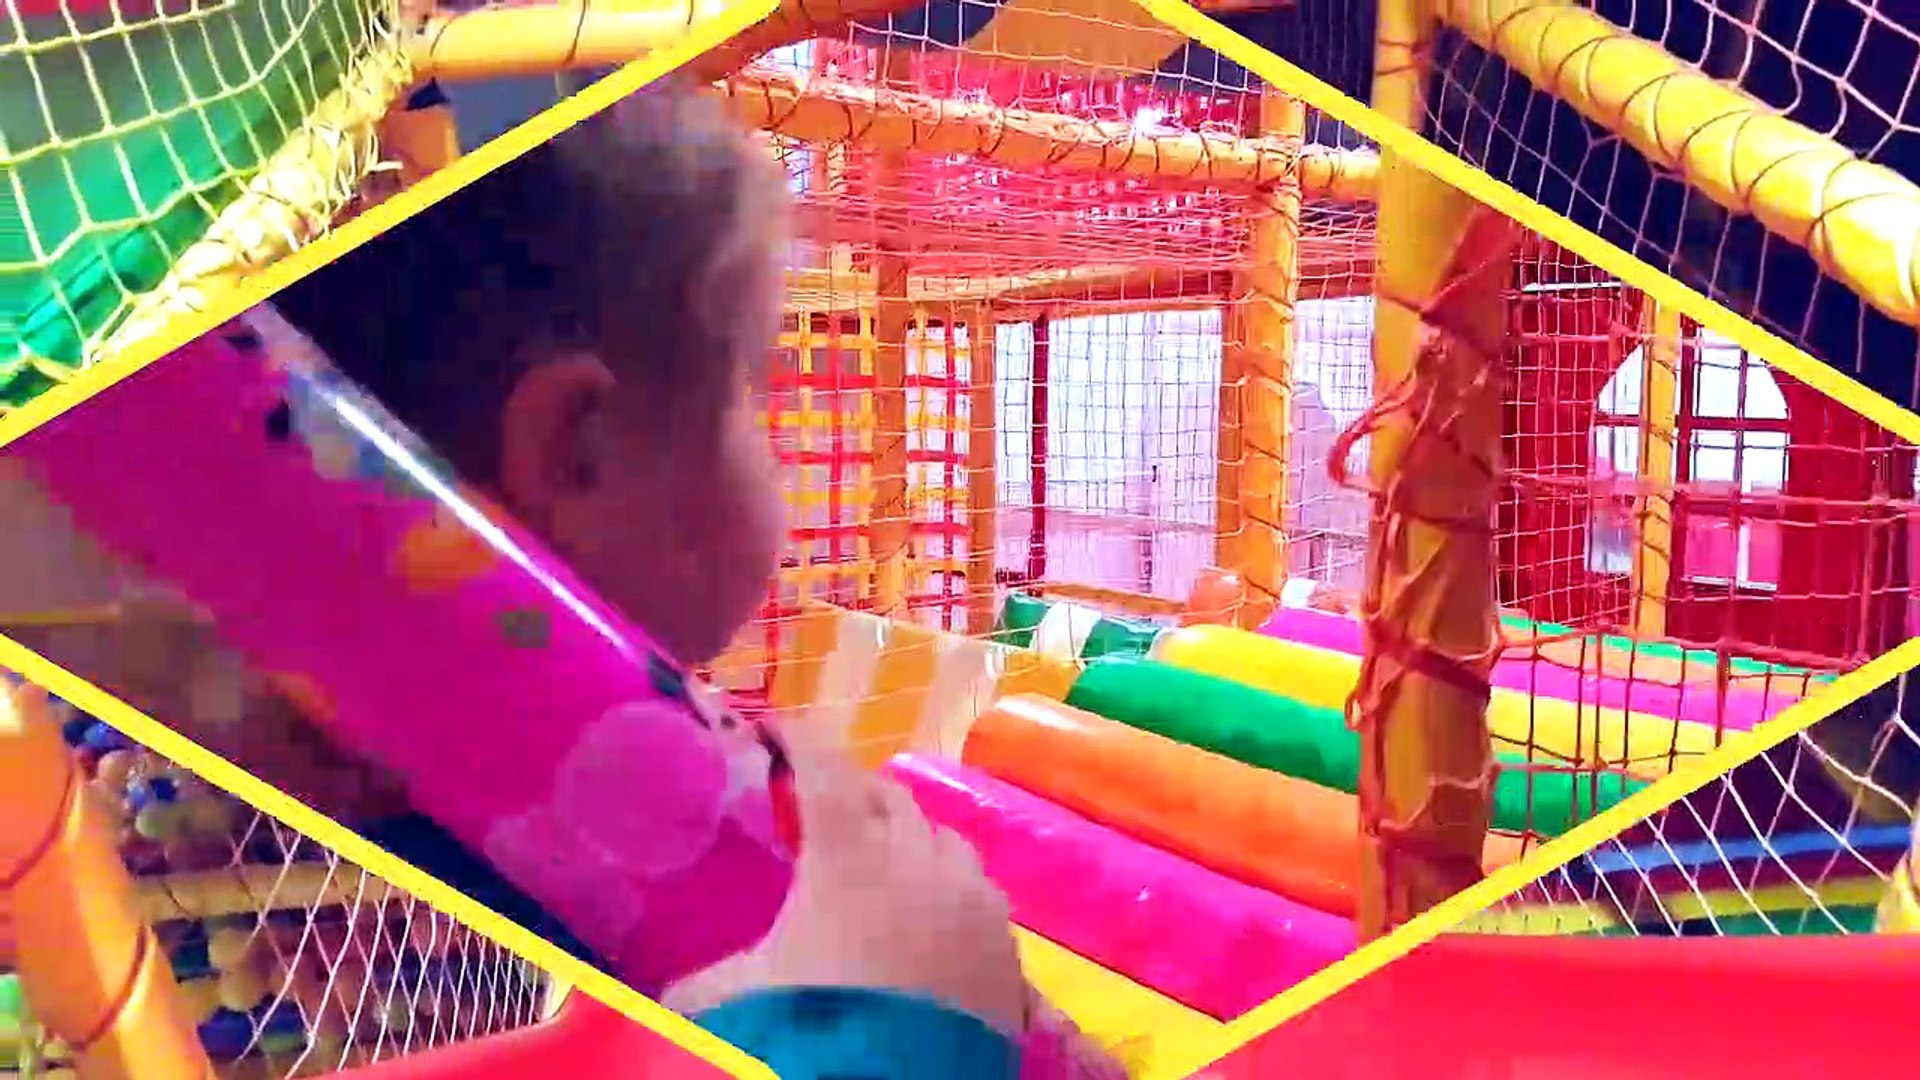 Indoor Playground Family Fun Play Entertainments for kids Trampoline Funny videos 2017  fo